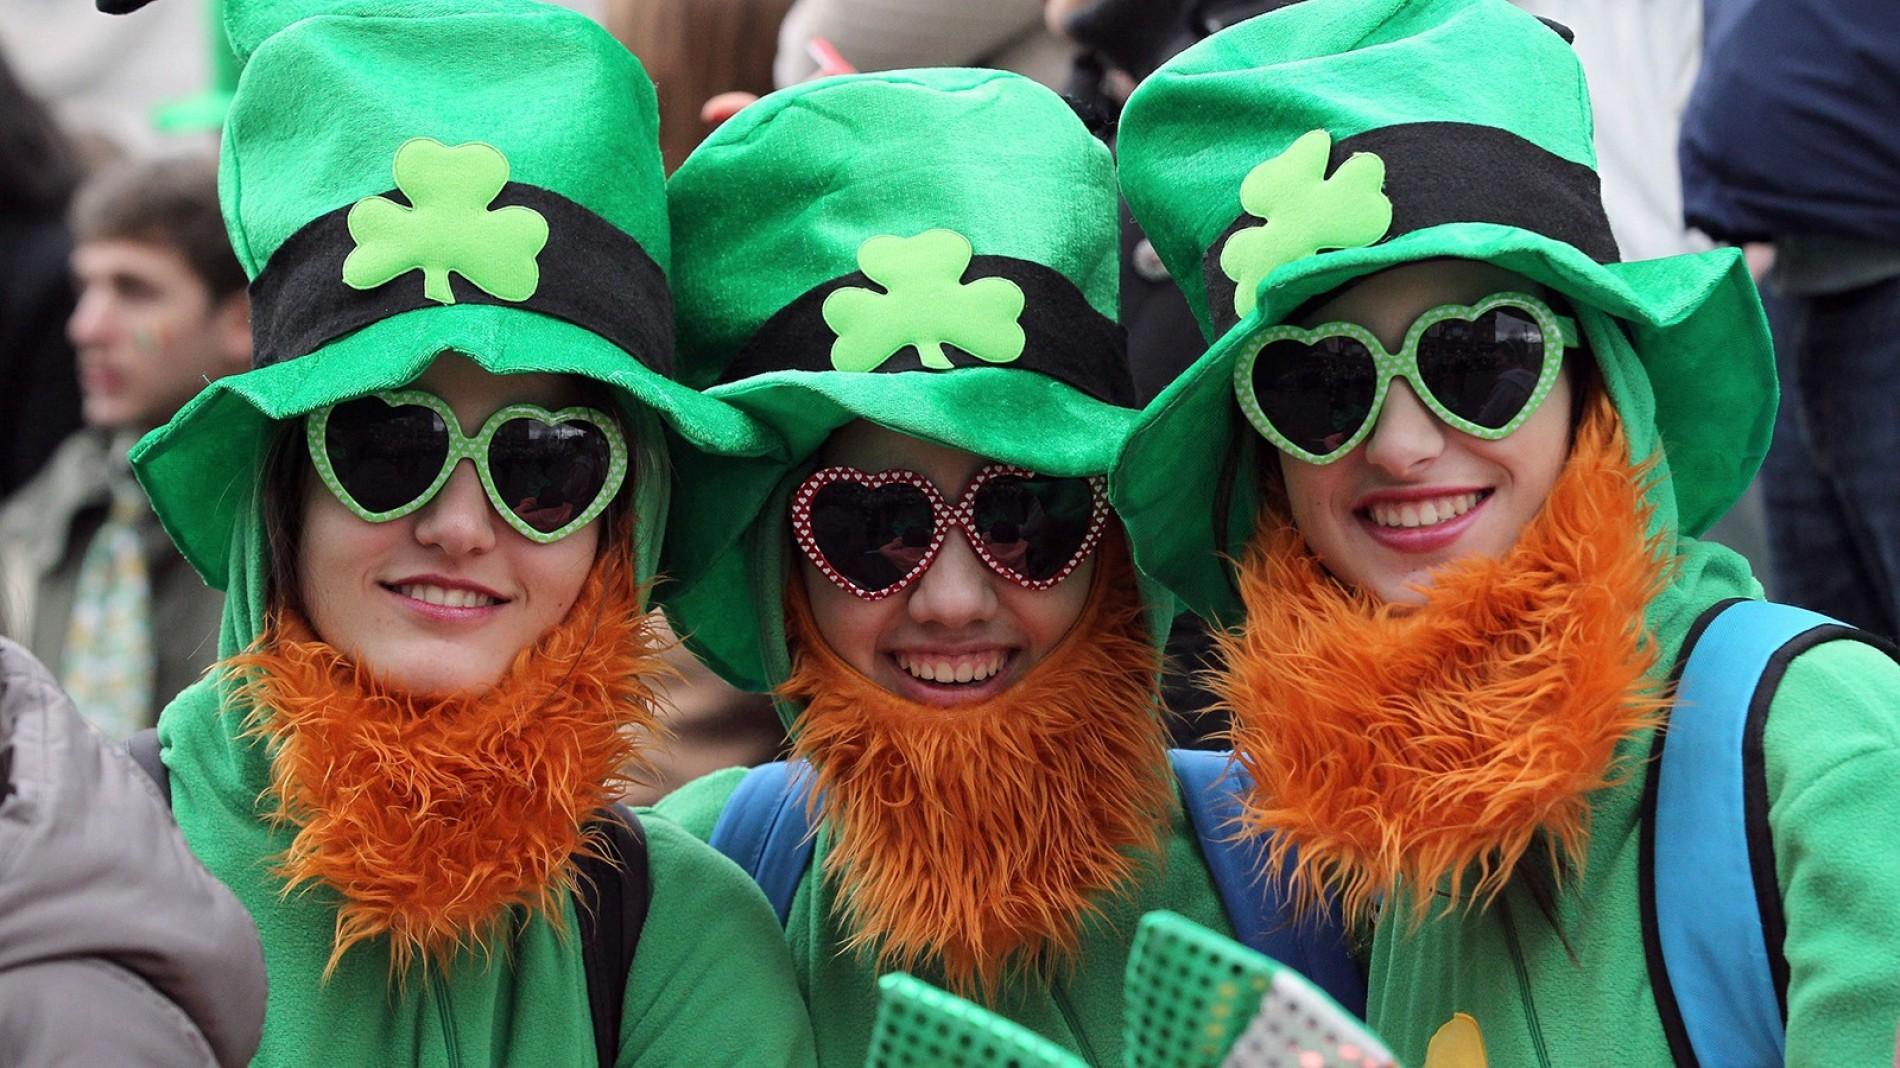 Three girls dressed up for St Patricks Day